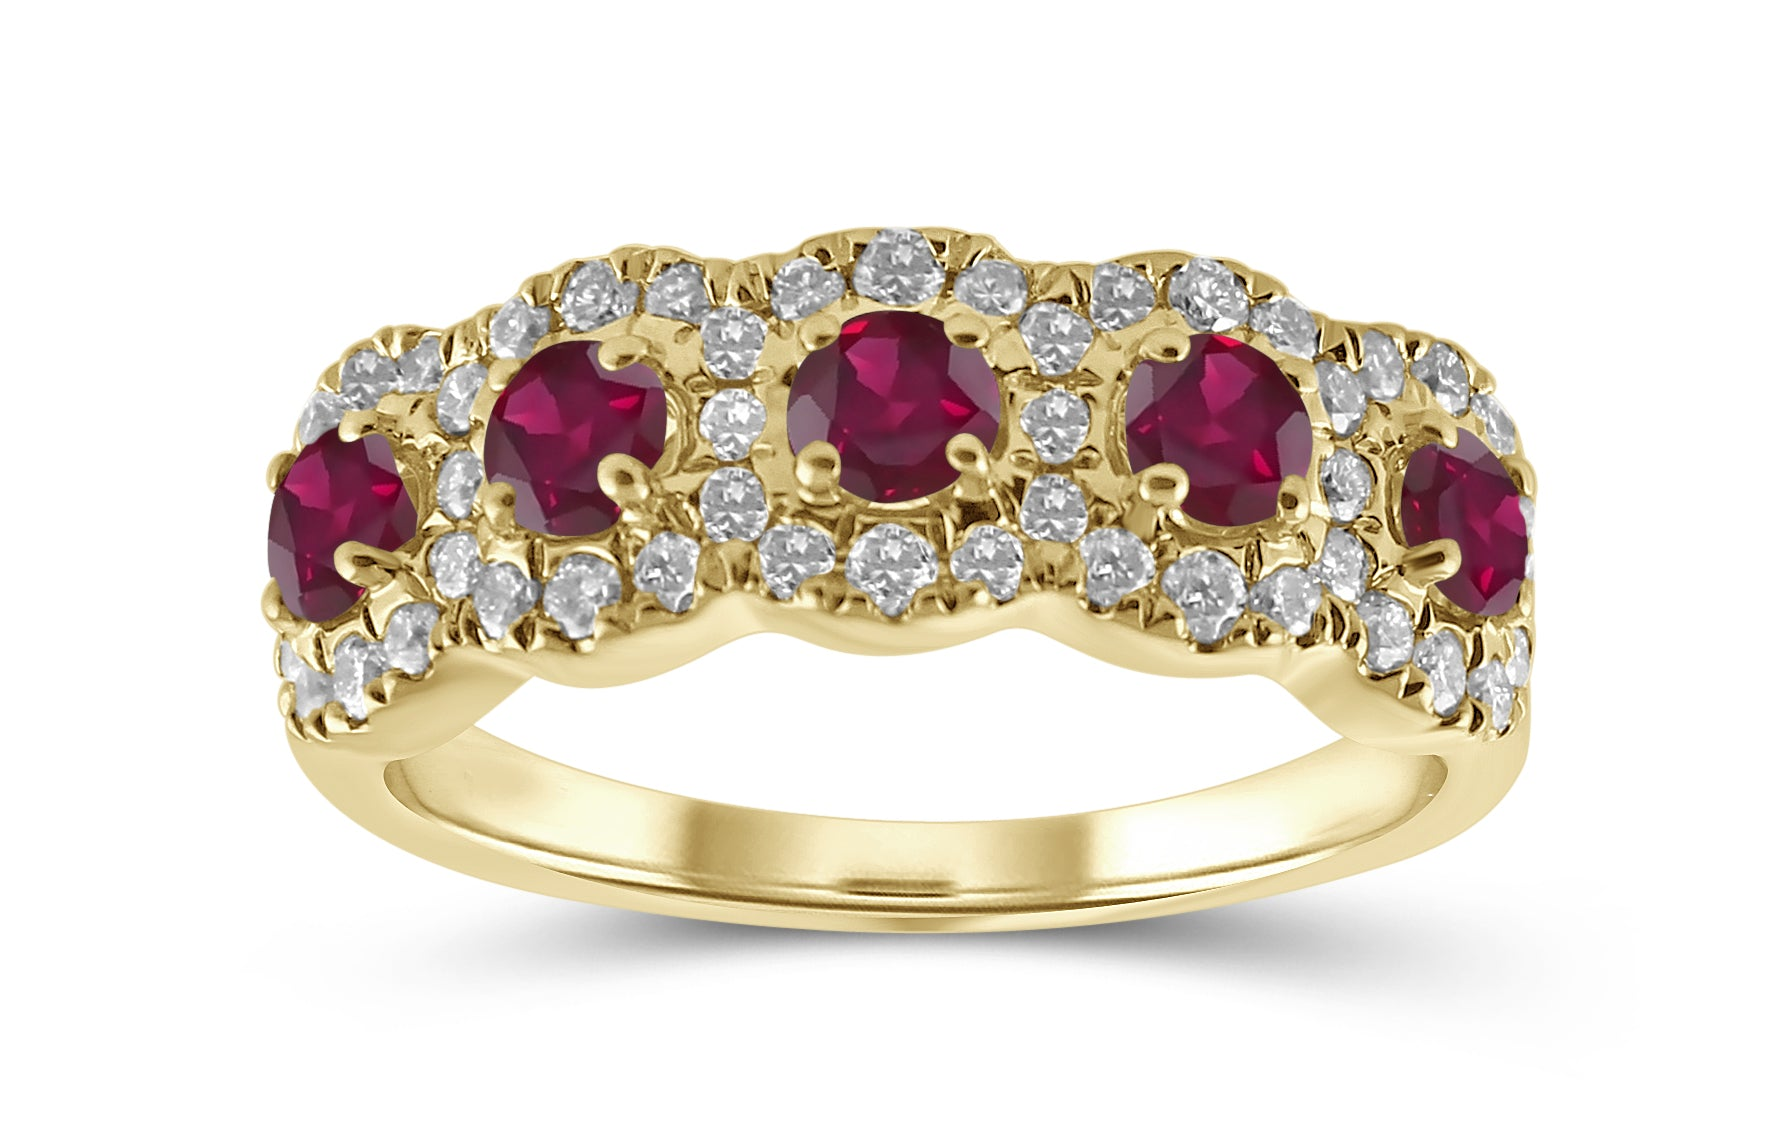 'Perlas' - 5 Halo Diamond & Gemstone Band